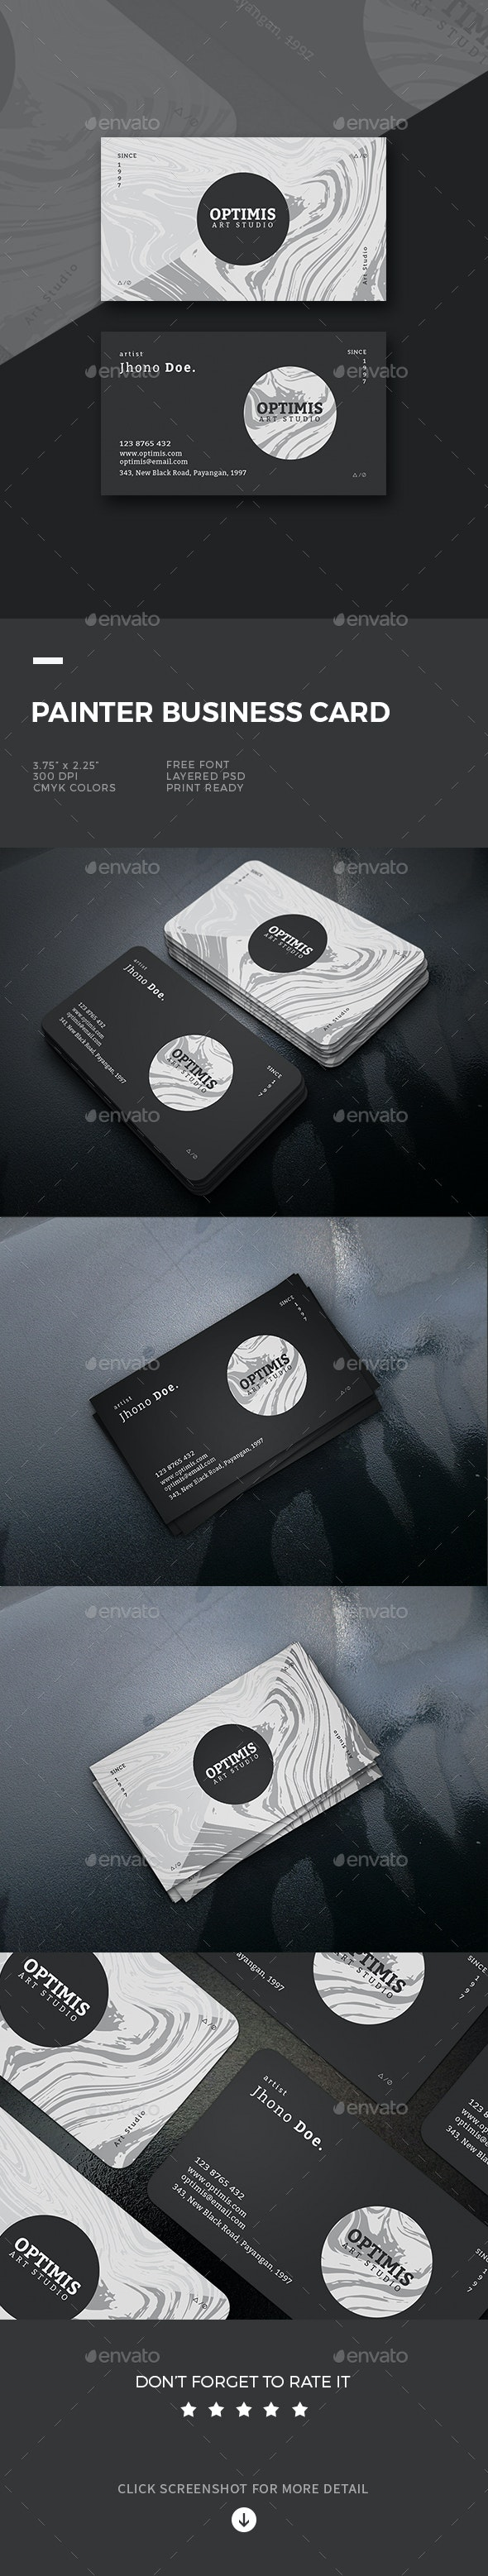 Painter Business Card - Business Cards Print Templates